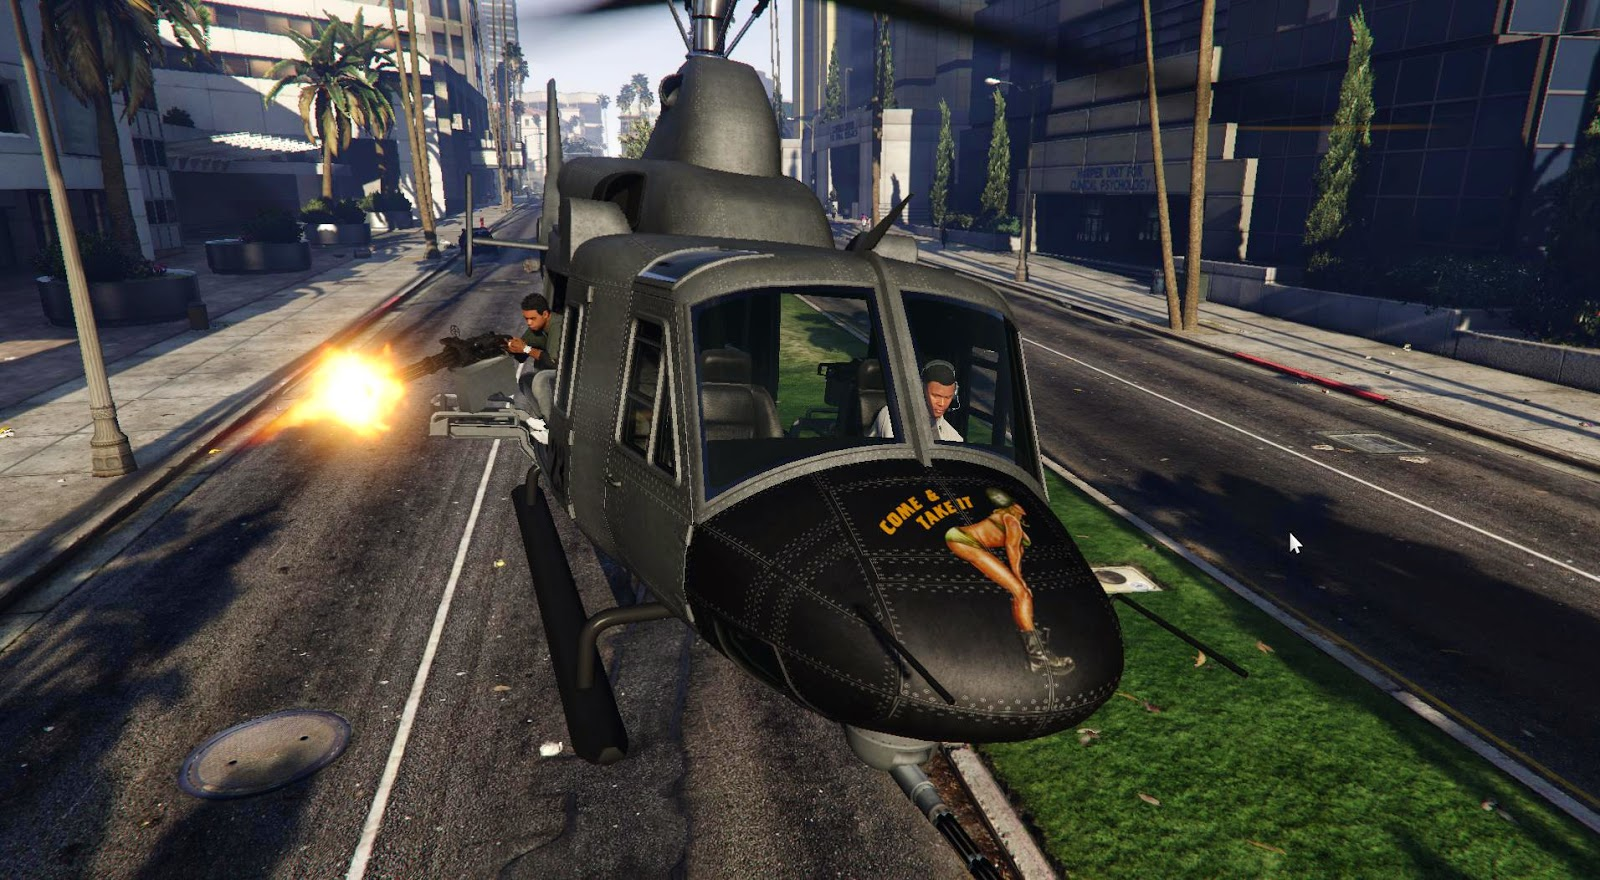 gta 5 mod free download for pc full version setup exe - The